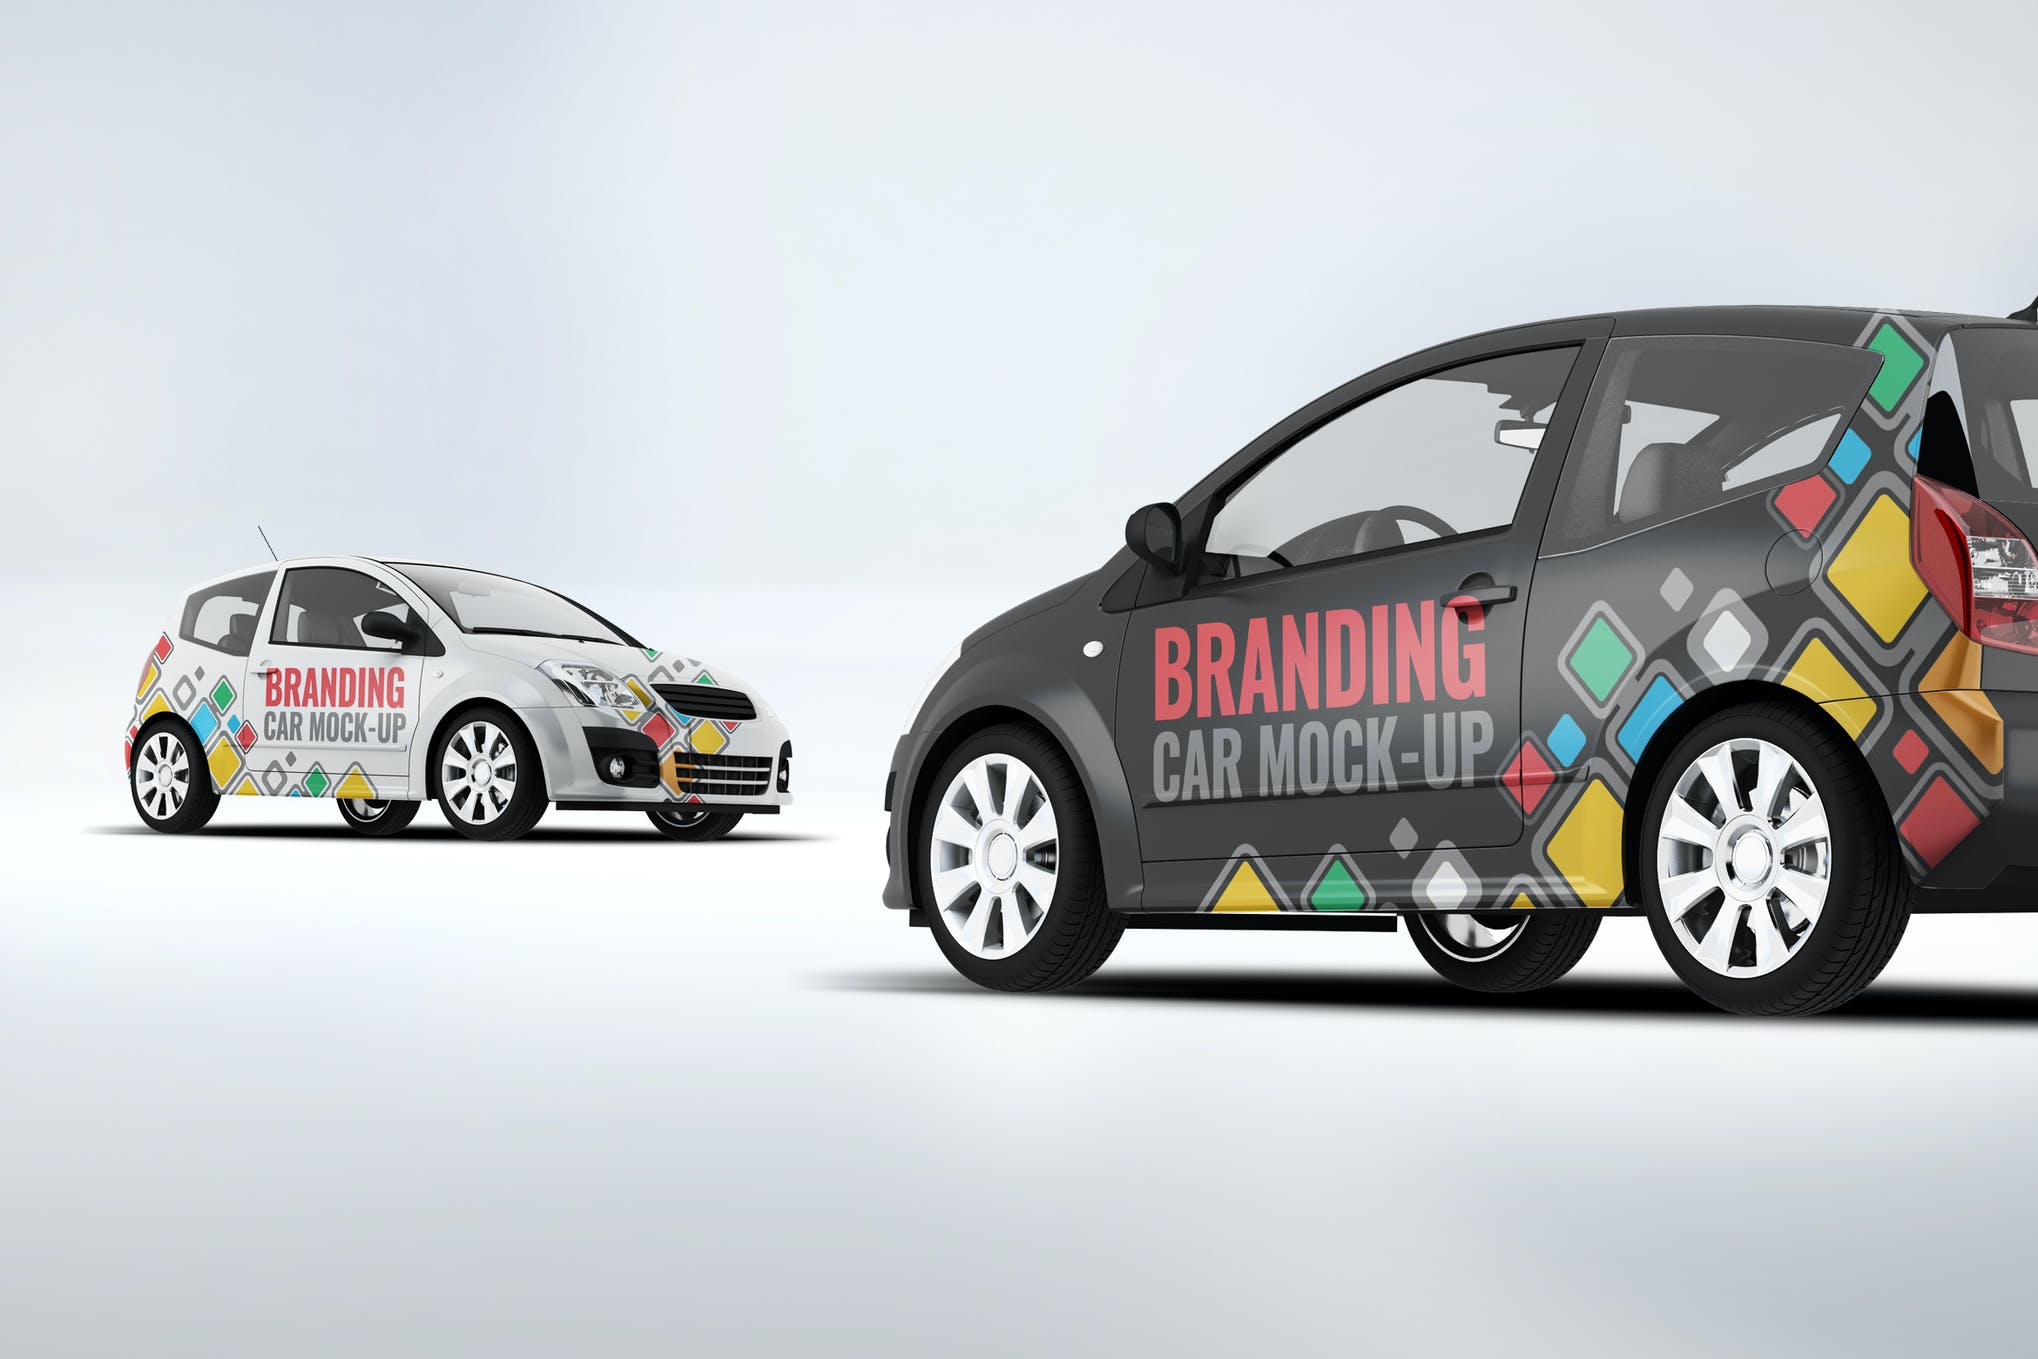 City Car Branding Mock-up by L5Design on Envato Elements